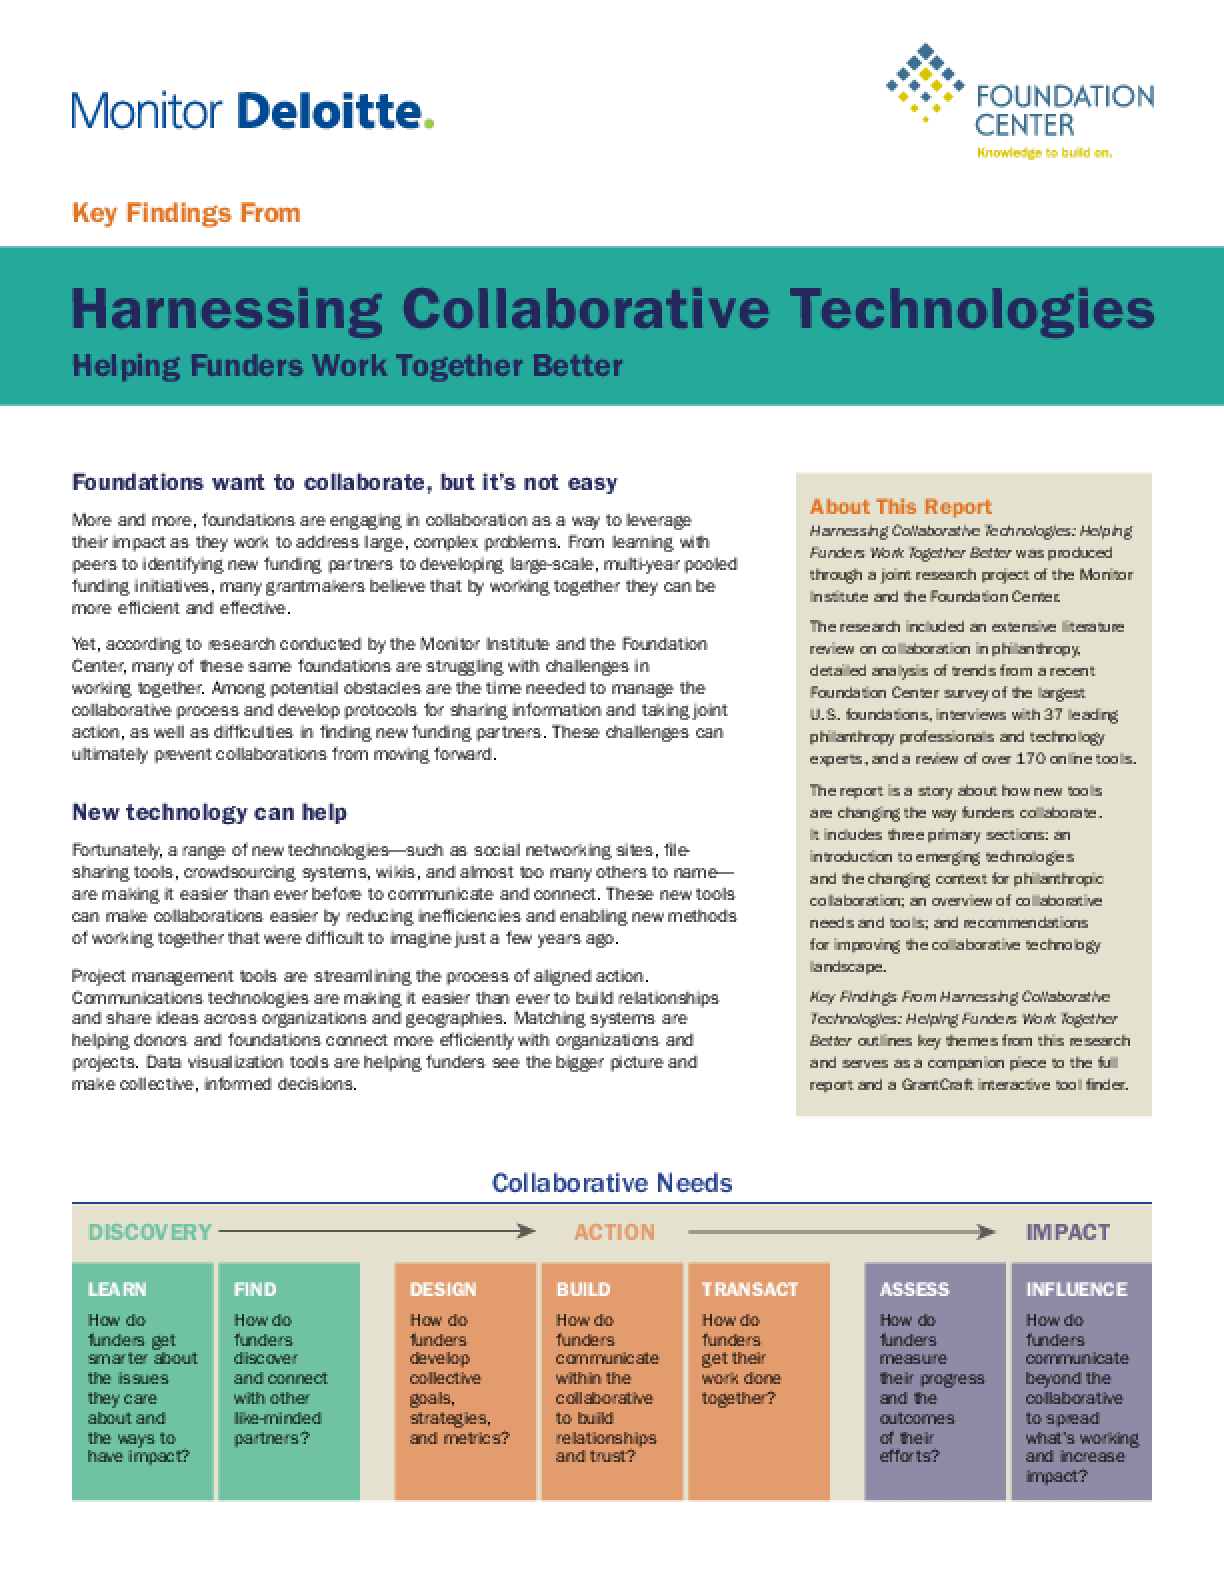 Key Findings From Harnessing Collaborative Technologies